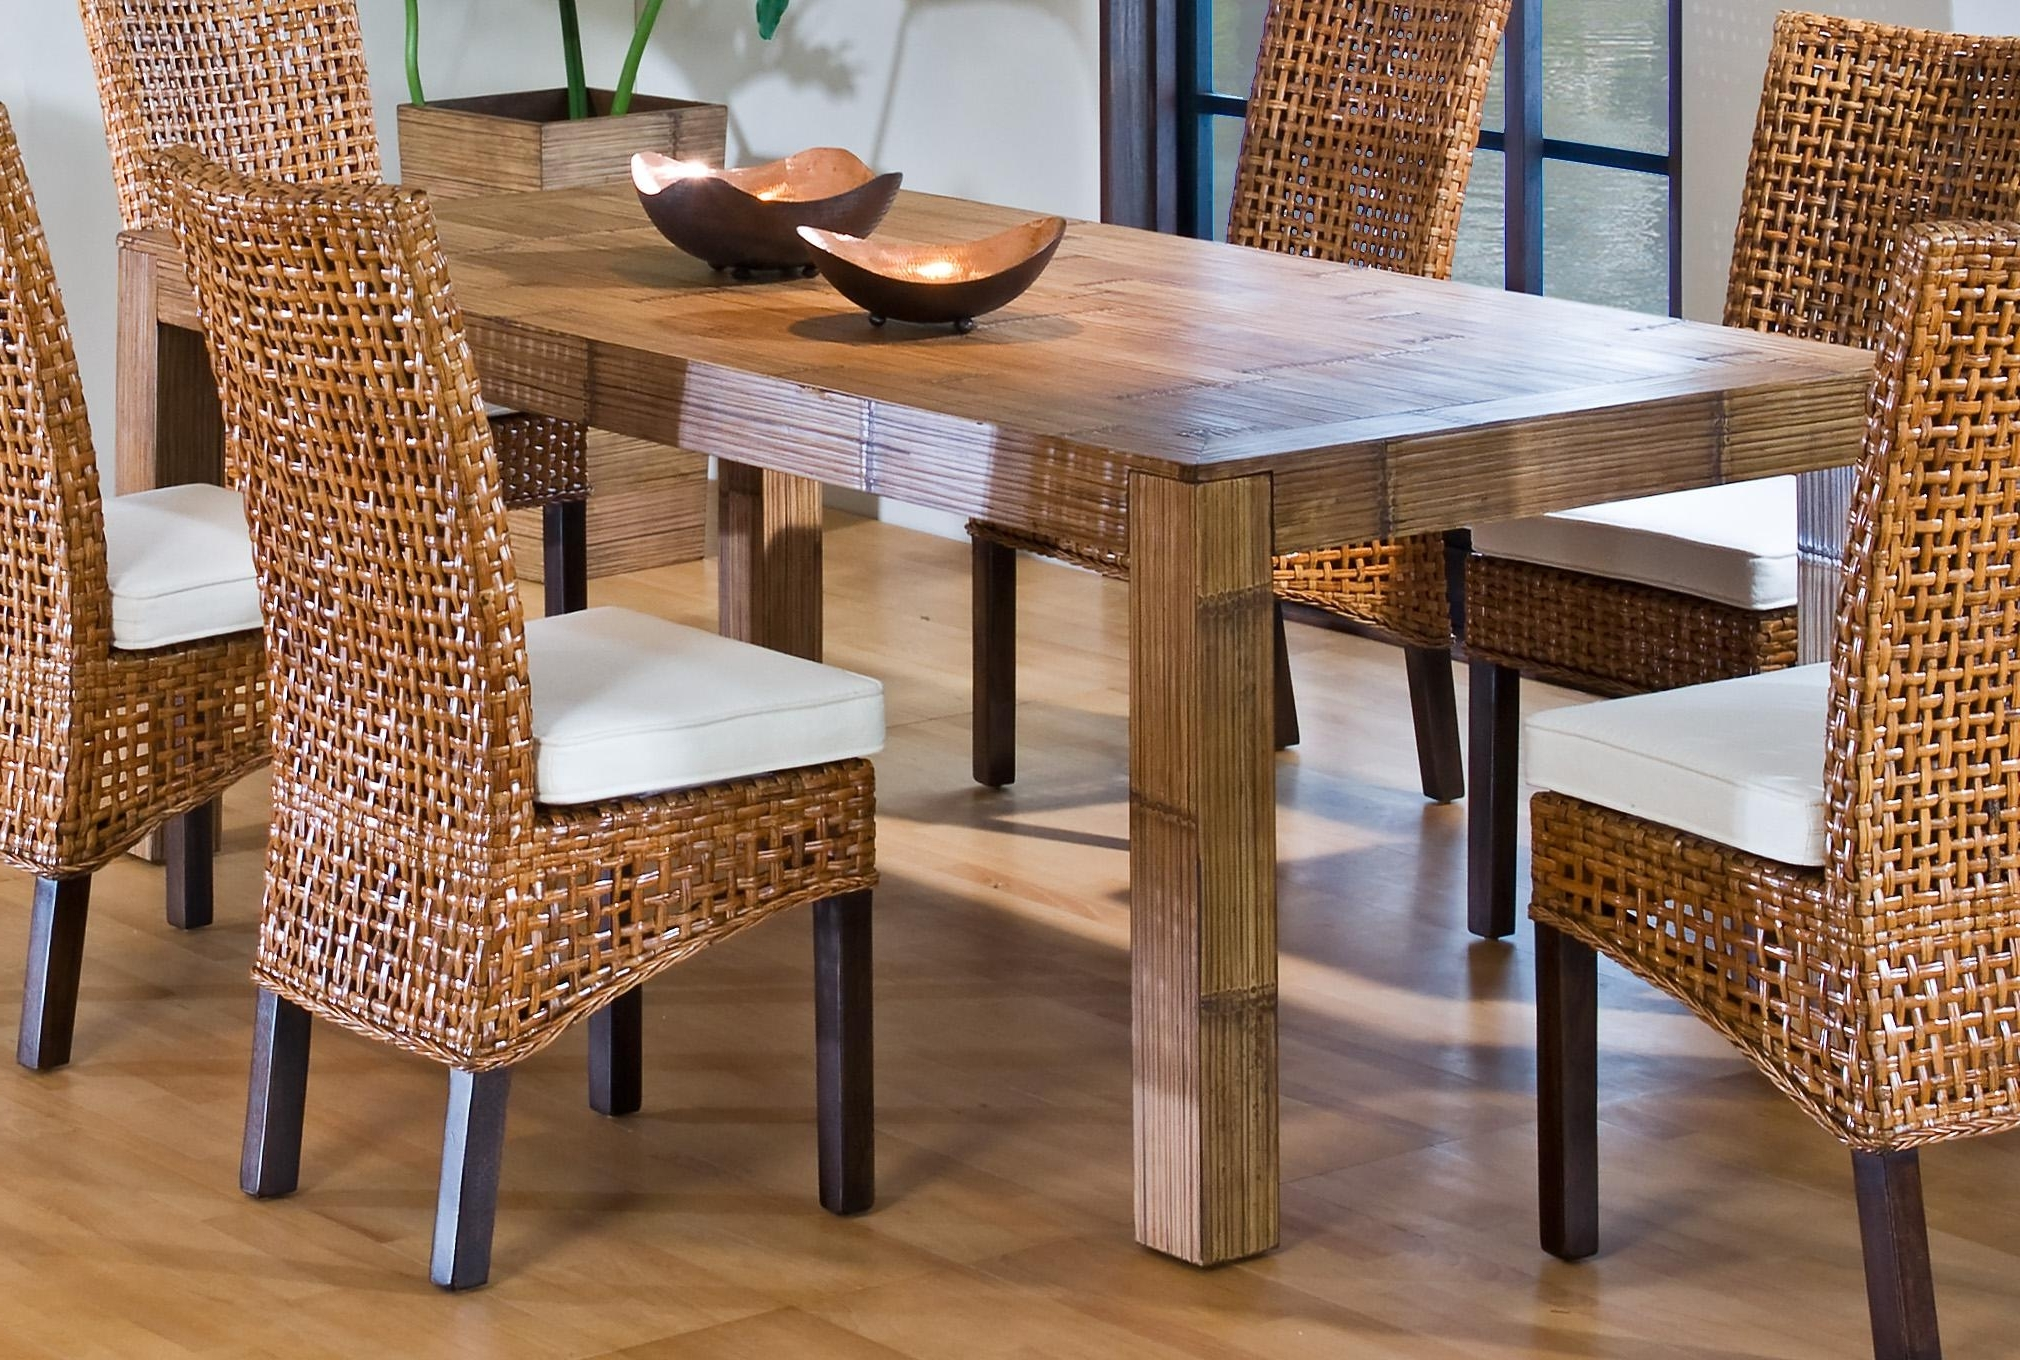 Most Recently Released Dining Table Indoor Wicker Dining Table Dining Table And 8 Chairs Throughout Rattan Dining Tables And Chairs (View 16 of 25)